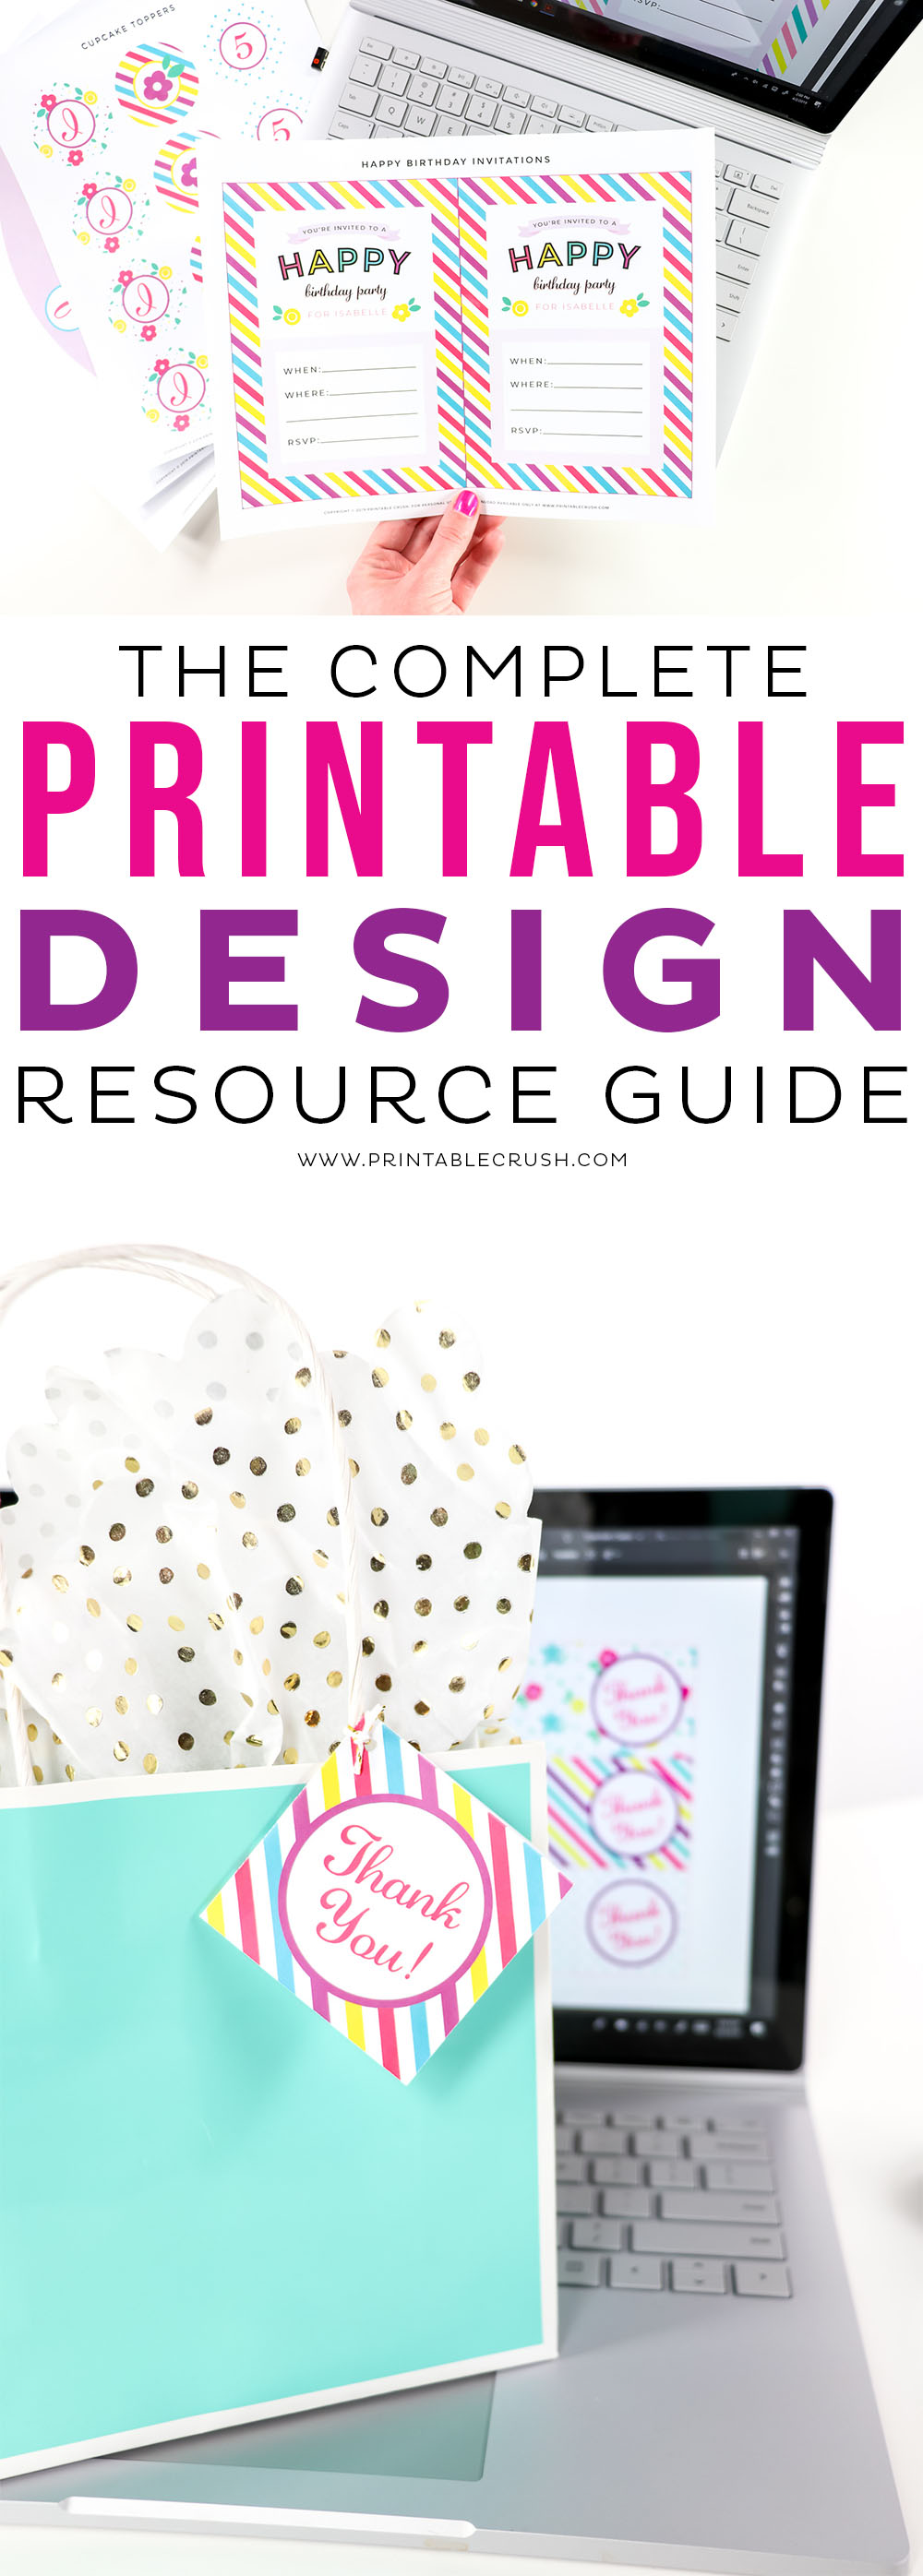 Intimidated by creating printables for your online business? Check out the Complete Printable Design Resource Guide for tips in starting your digital store! #printabledesignforbeginners #printabledesign #printables #entrepreneur #digitalproducts